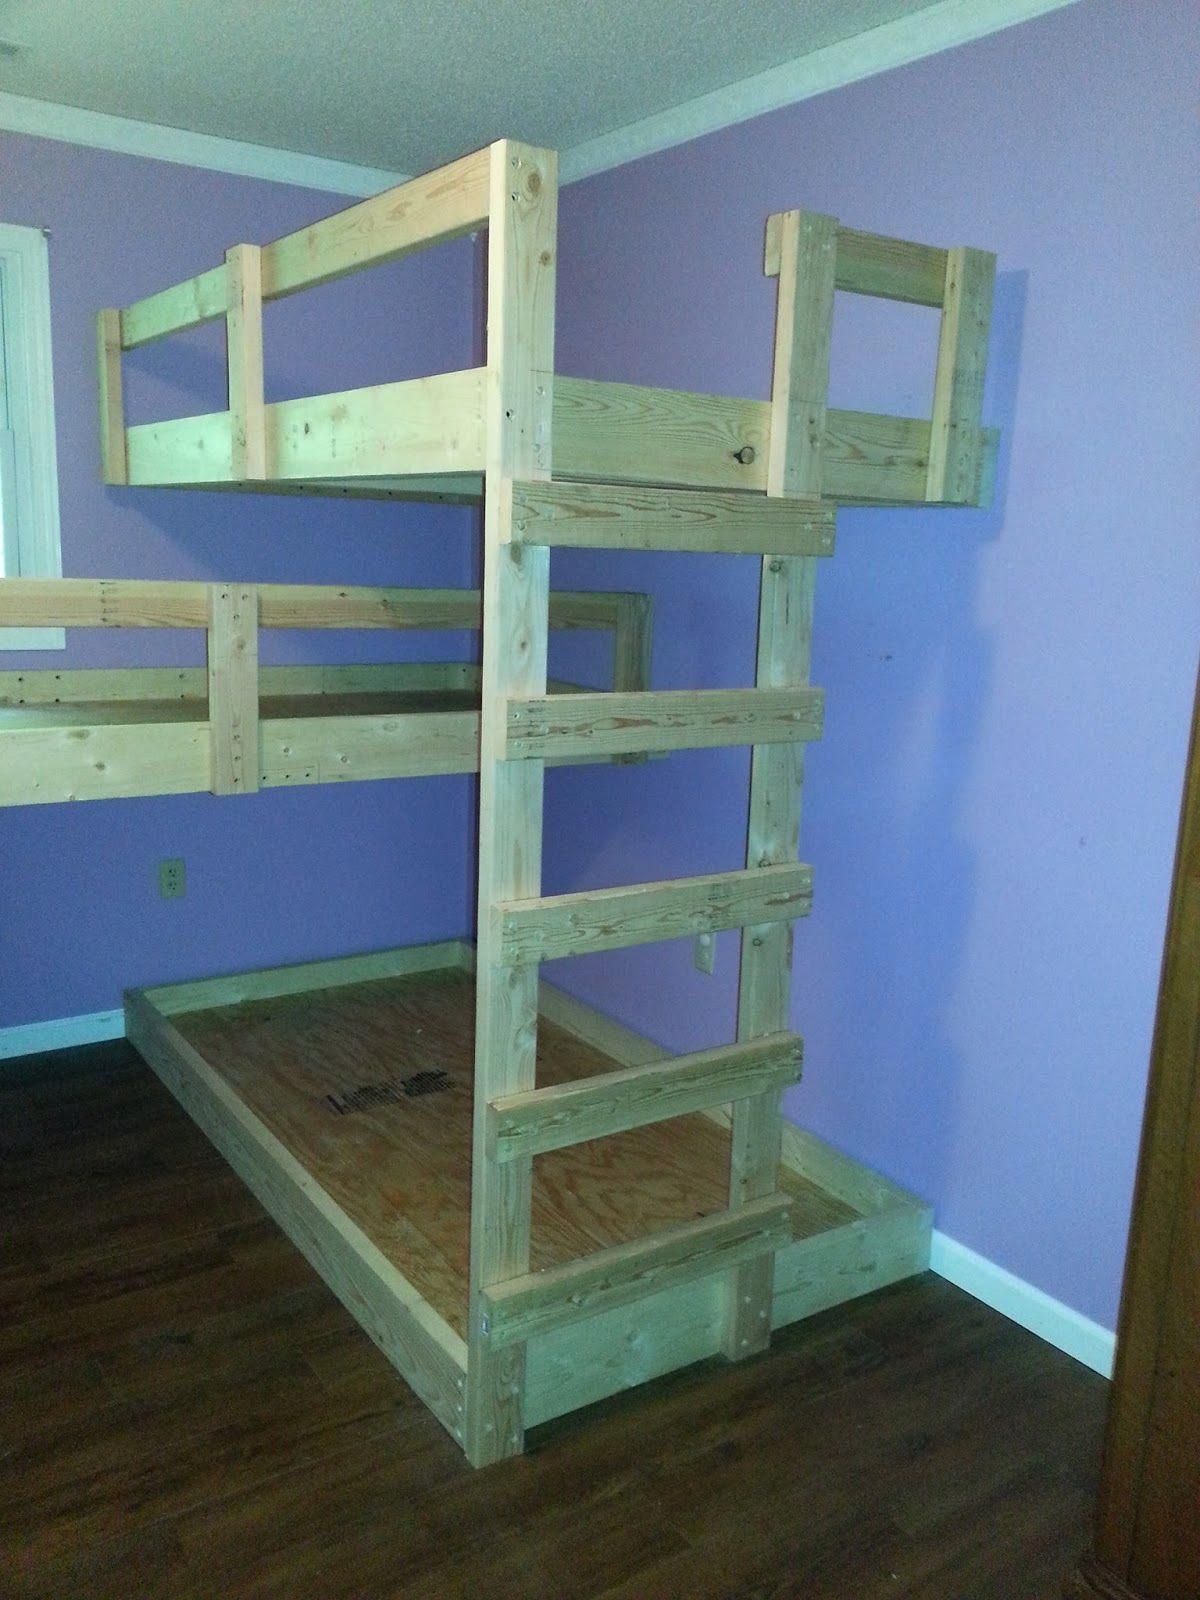 Metal loft bed ideas  Knowing that we reopened our home for foster care in hopes of